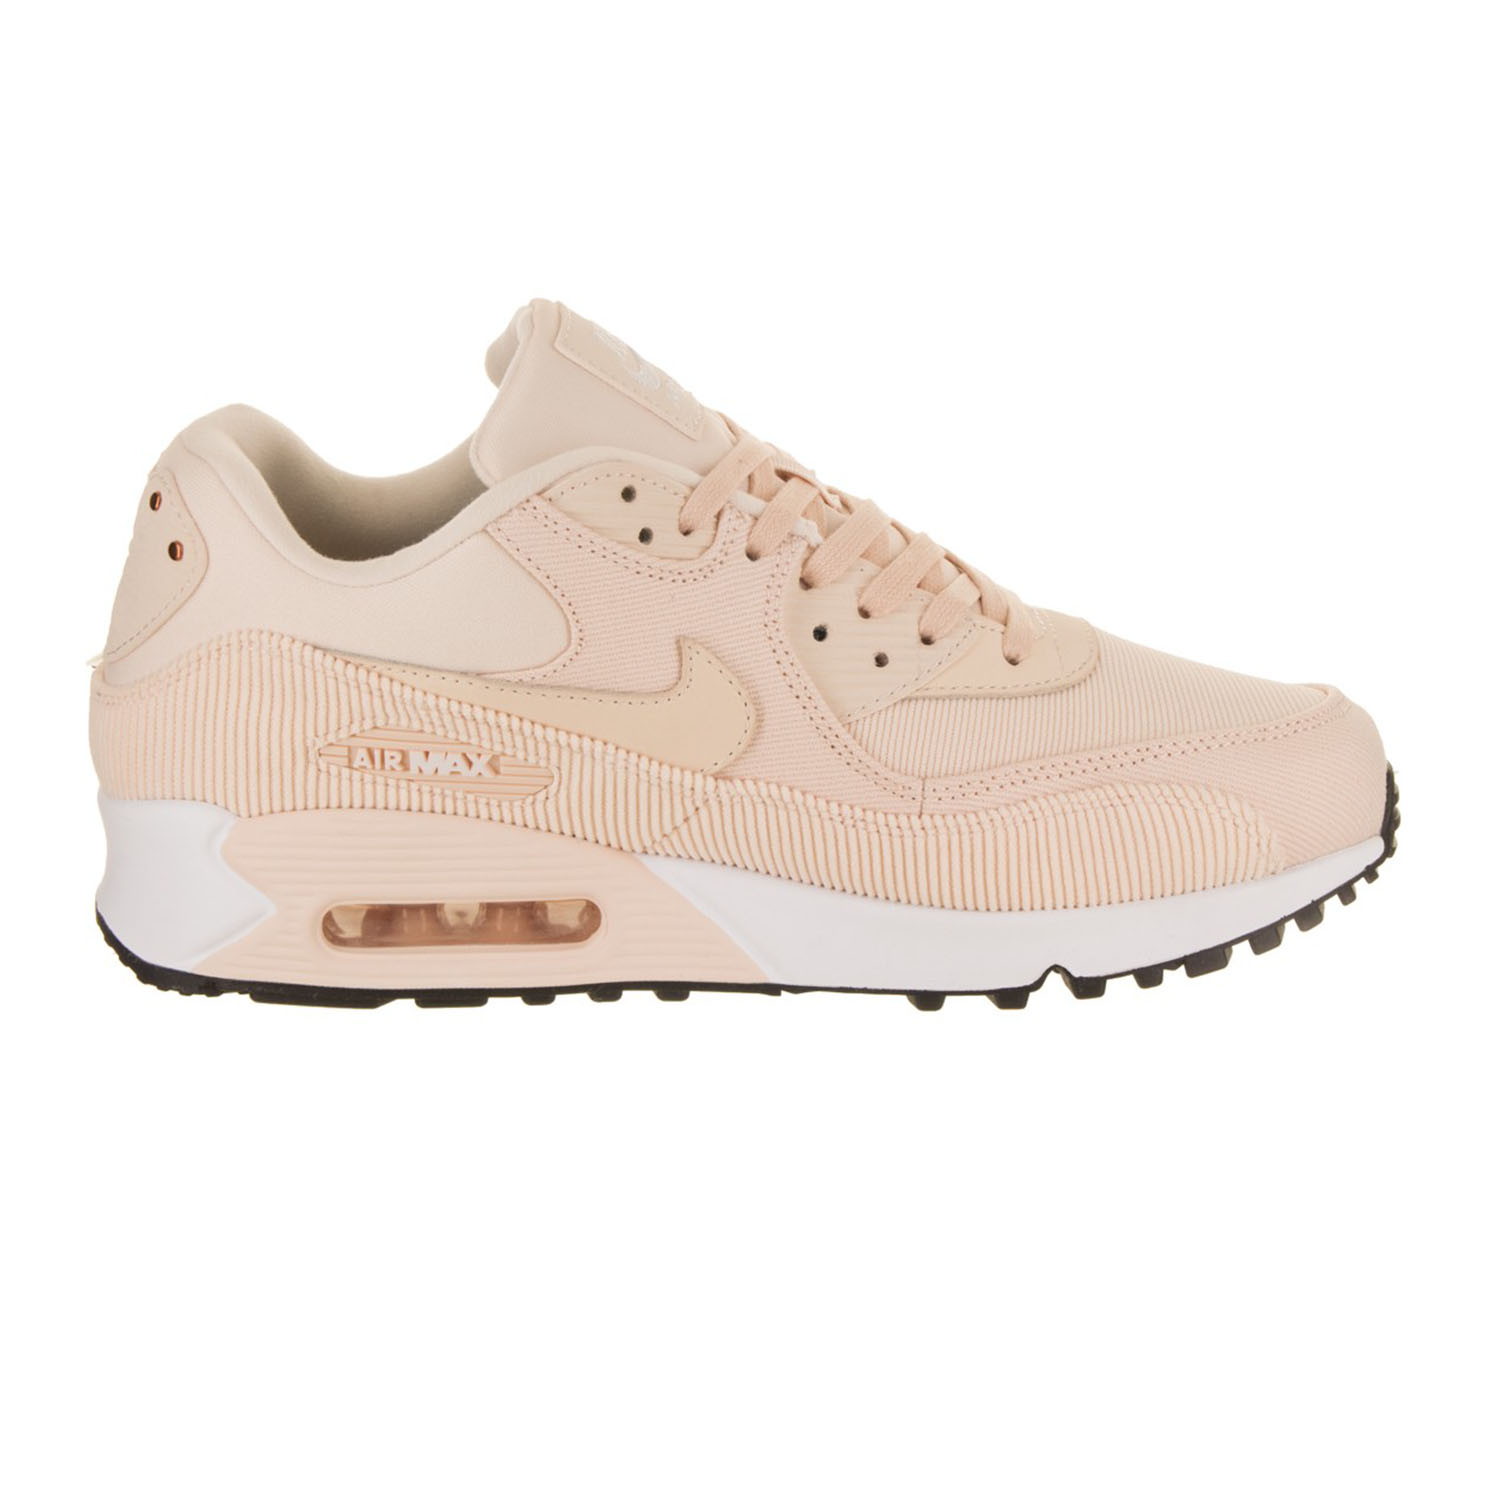 Nike Air Max 90 Leather M ( 921304-800 ) παπούτσια    γυναίκα   sneakers   trainers